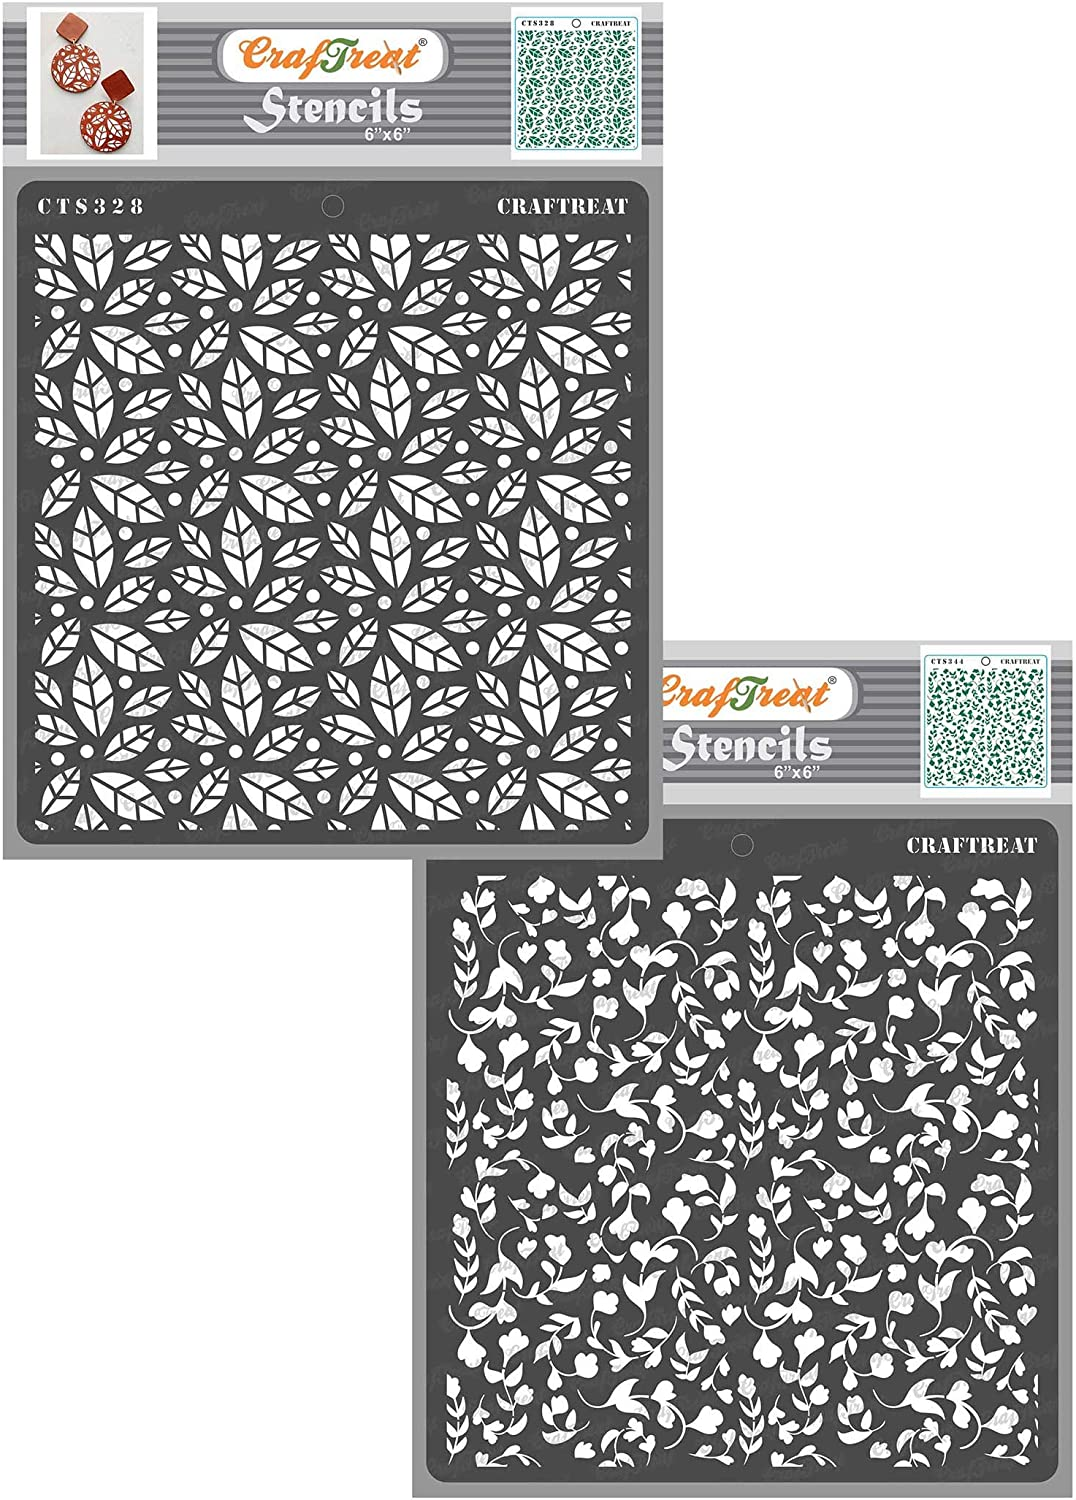 2 pcs - Reusable Painting Template for Home Decor Wall Crafting Fabric DIY Albums Wood 6x6 inches Scattered Leaves and Foliage2 Scrapbook and Printing on Paper Tile CrafTreat Stencil